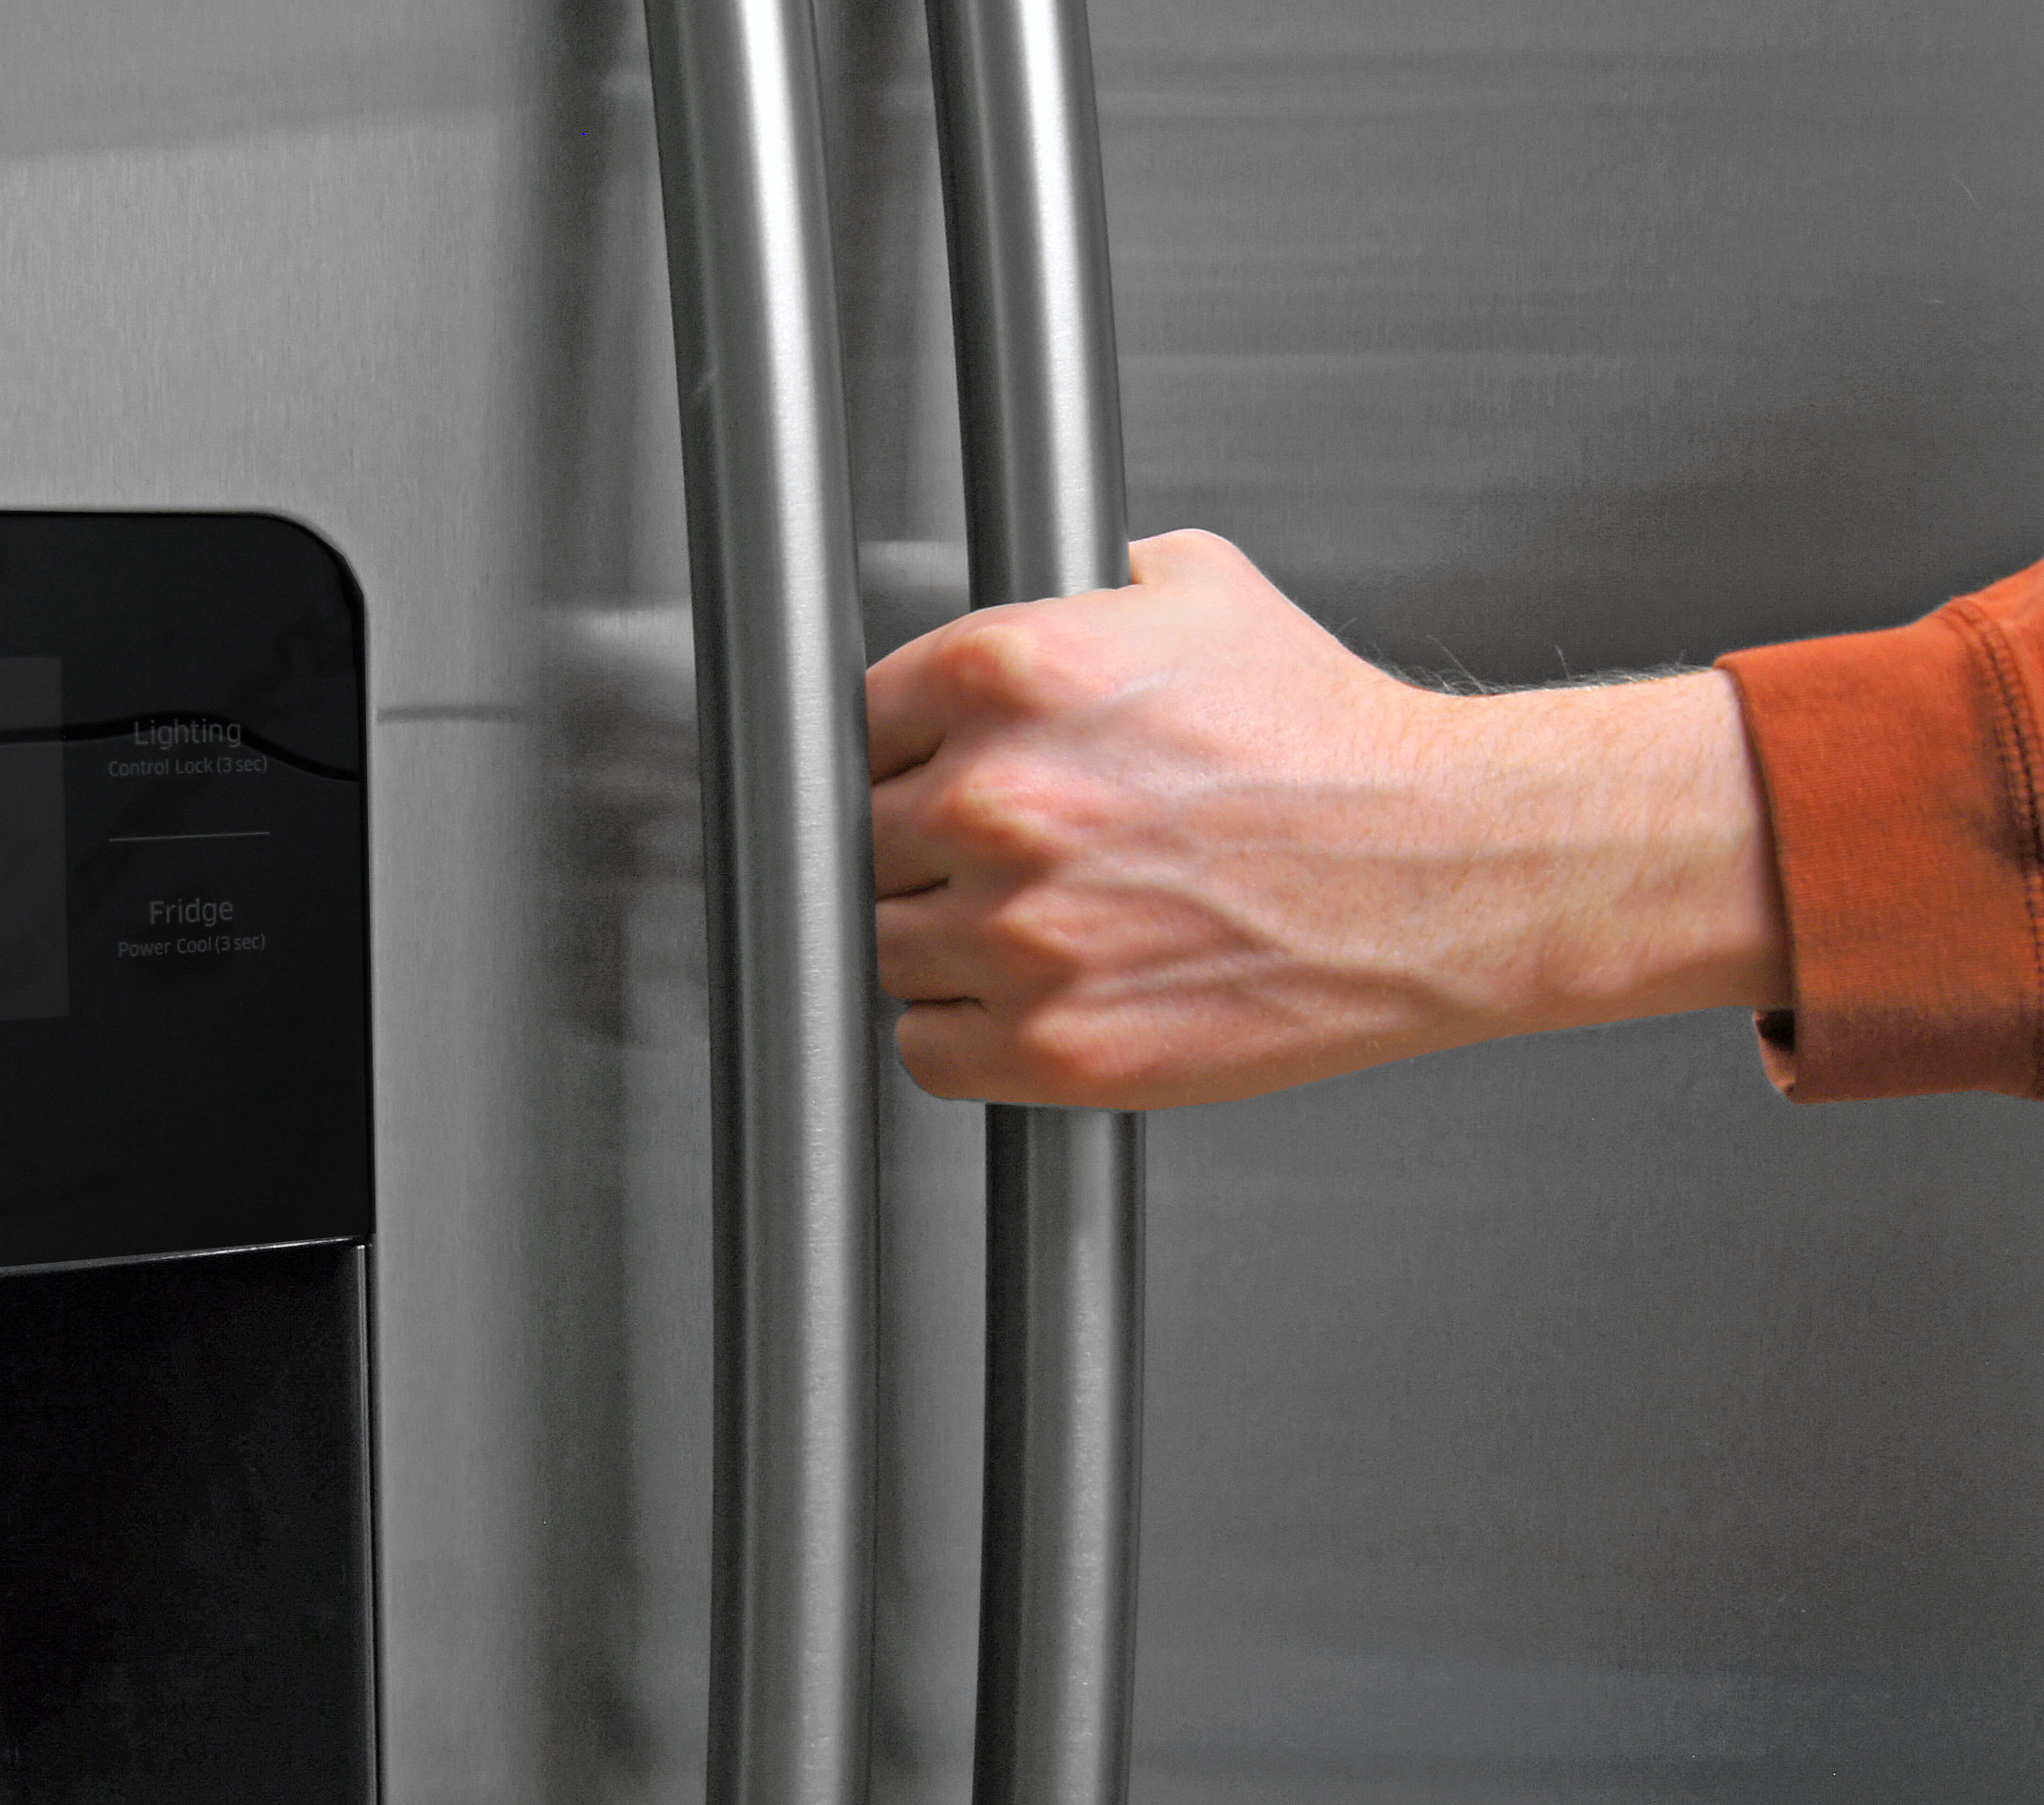 The Samsung RS25H5121SR's handles are smooth, rounded, and easy to grip.